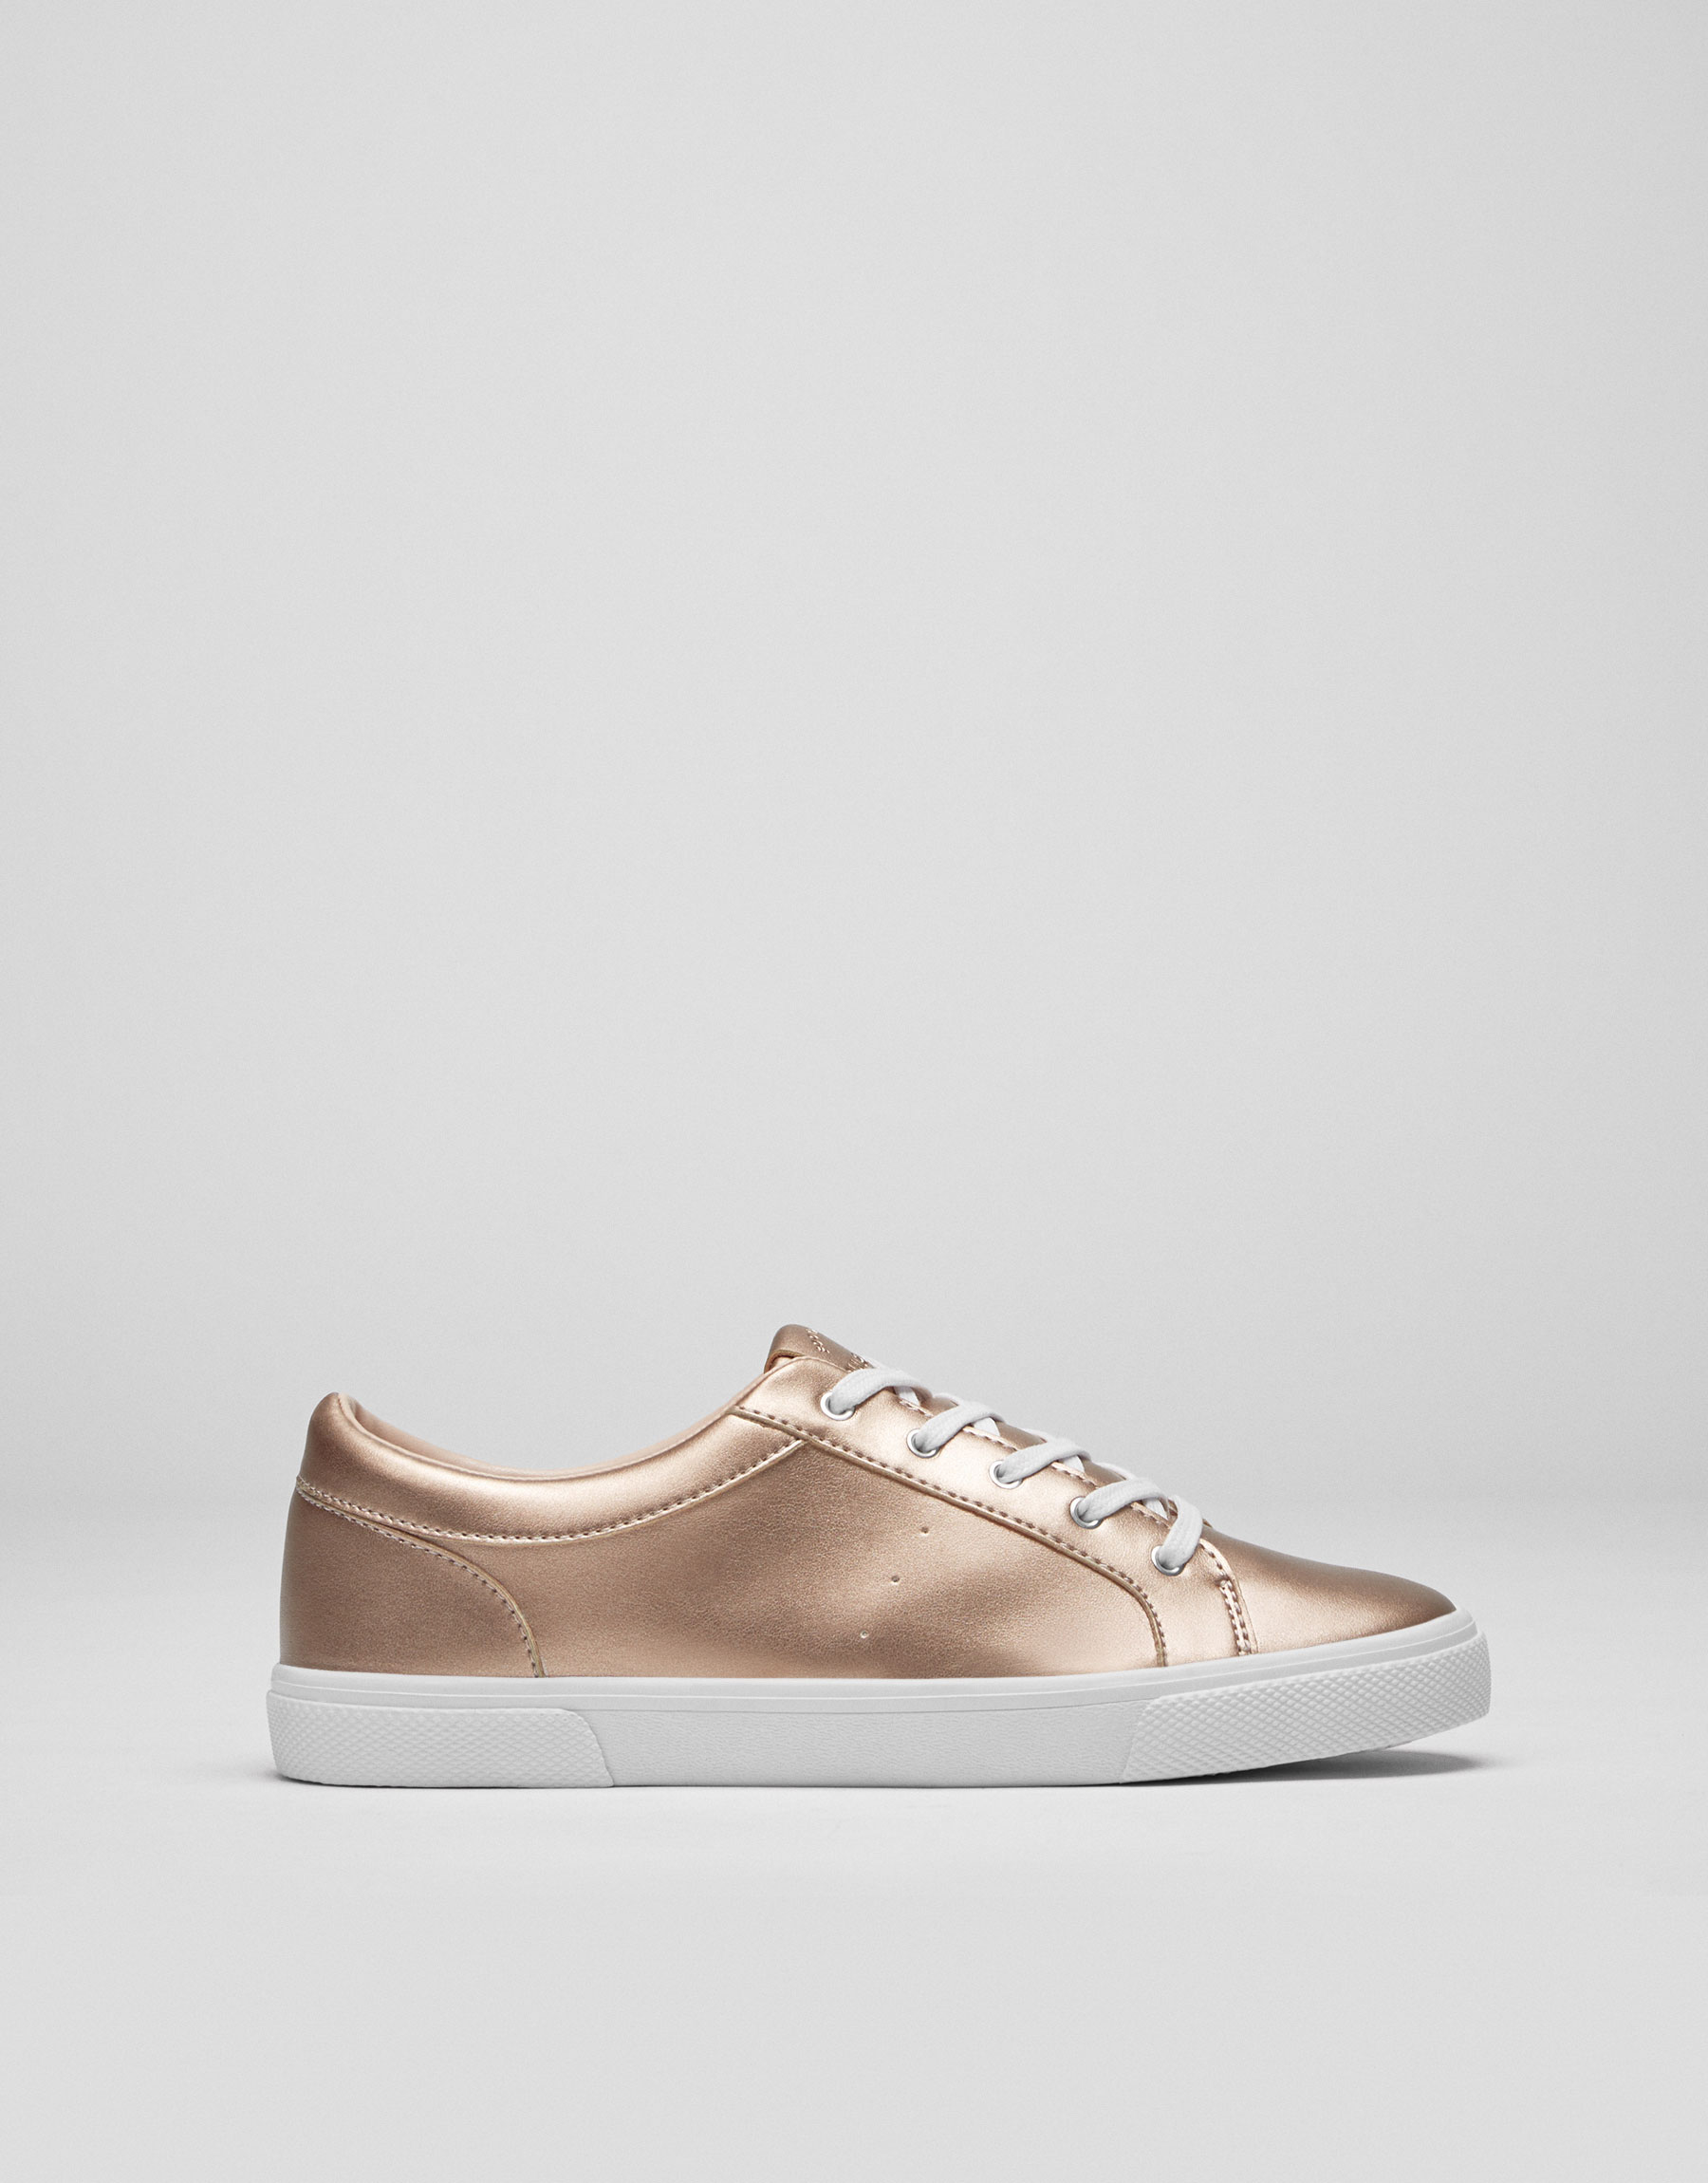 Basic-Sportschuhe in Rosa mit Metallic-Finish